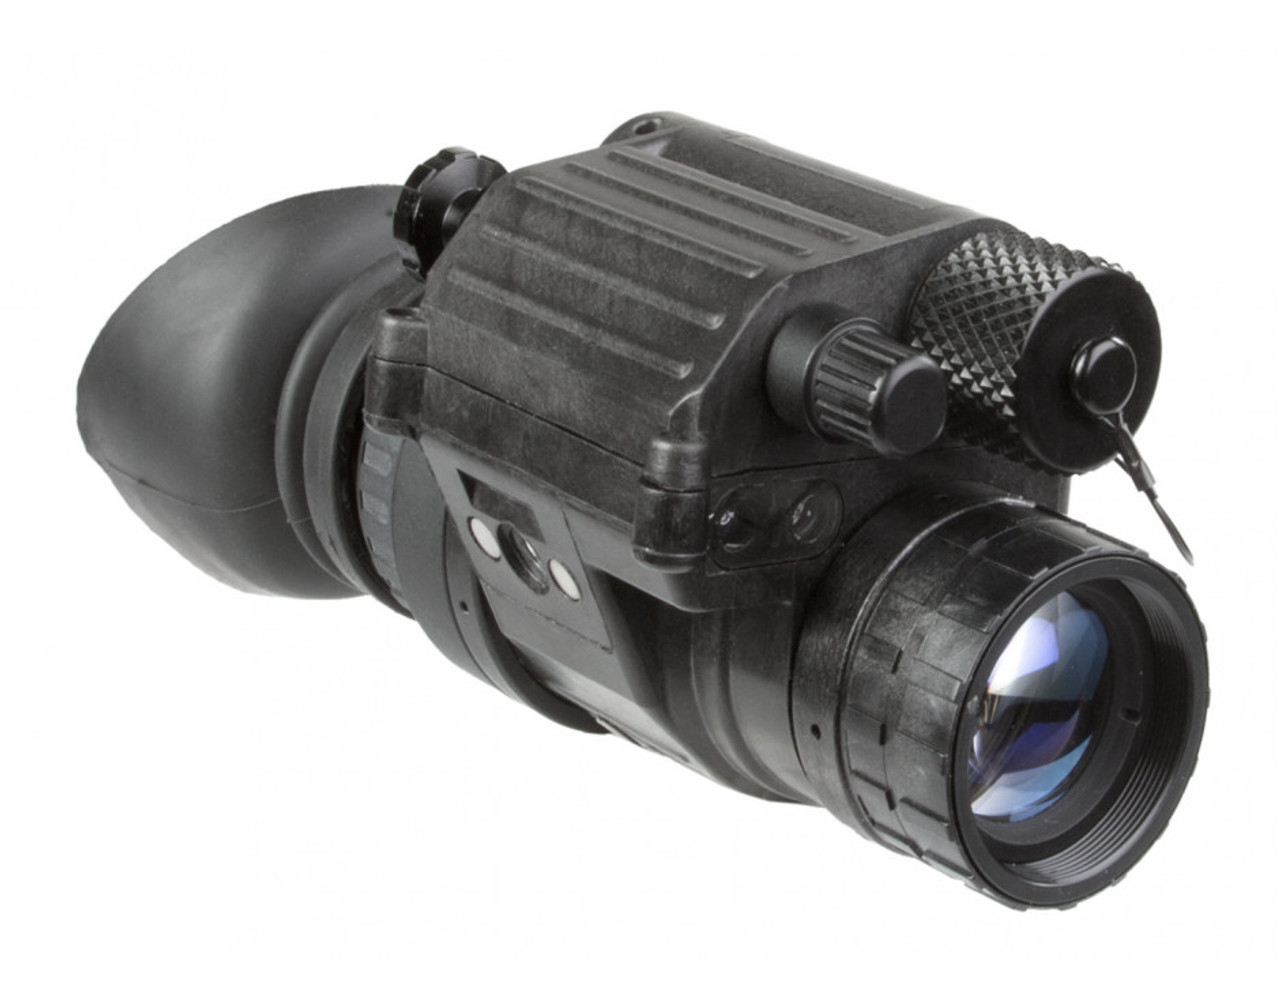 "AGM PVS-14 3AW1 Night Vision Monocular Gen 3+ Auto-Gated ""White Phosphor Level 3"" (AGM PVS-14 3AW1)"